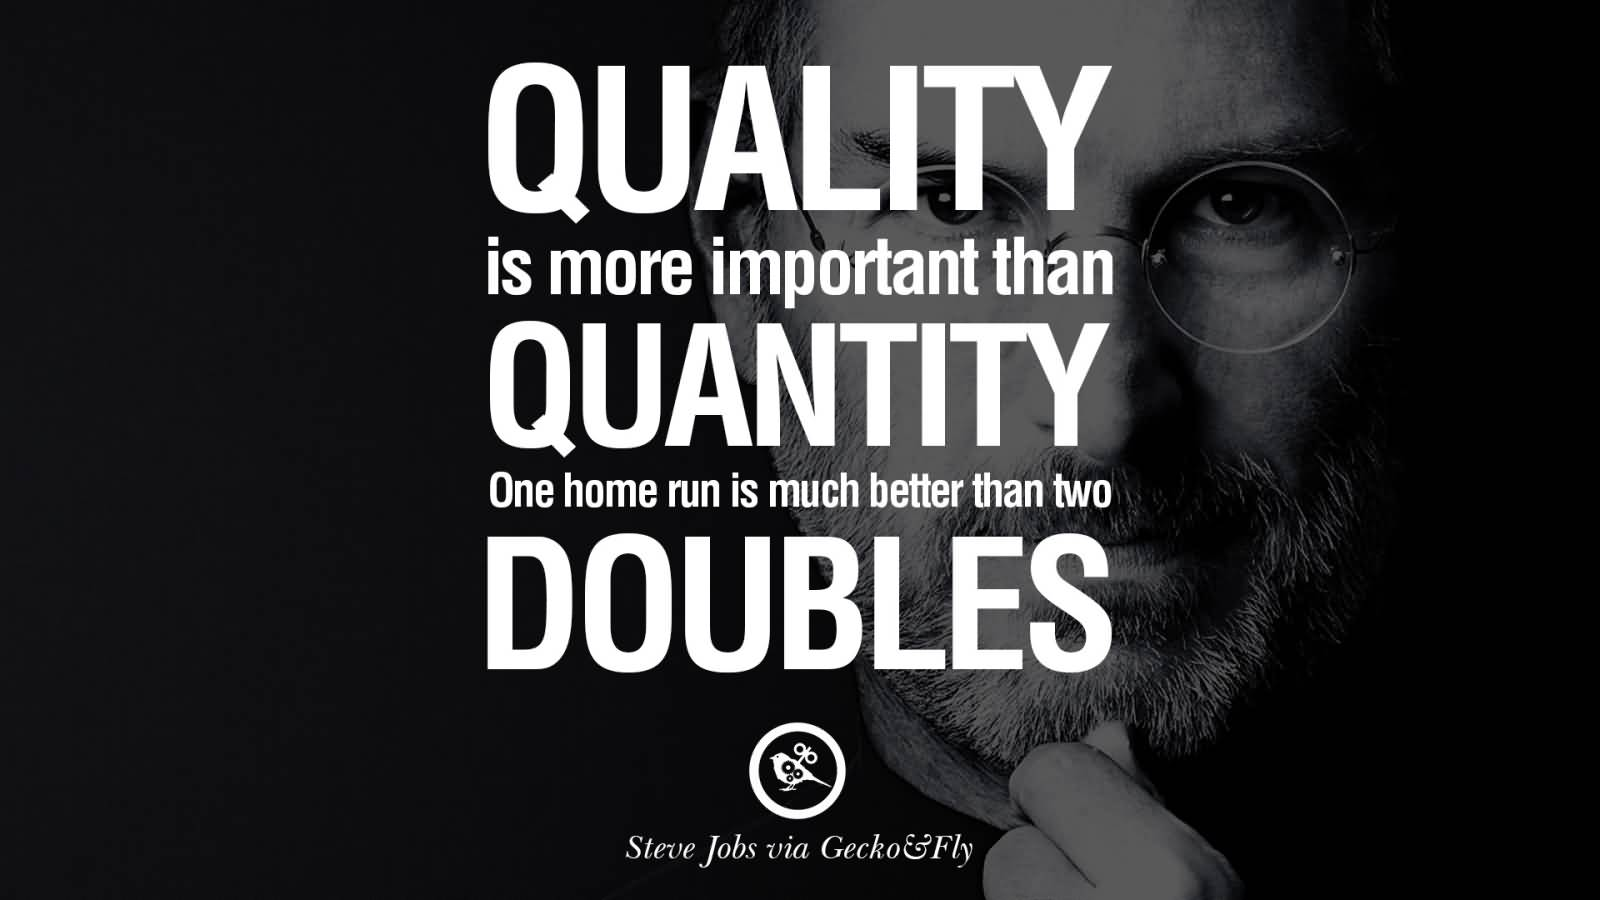 Steve Jobs Quotes Your Time Is Limited Wallpaper 61 Top Job Quotes And Sayings